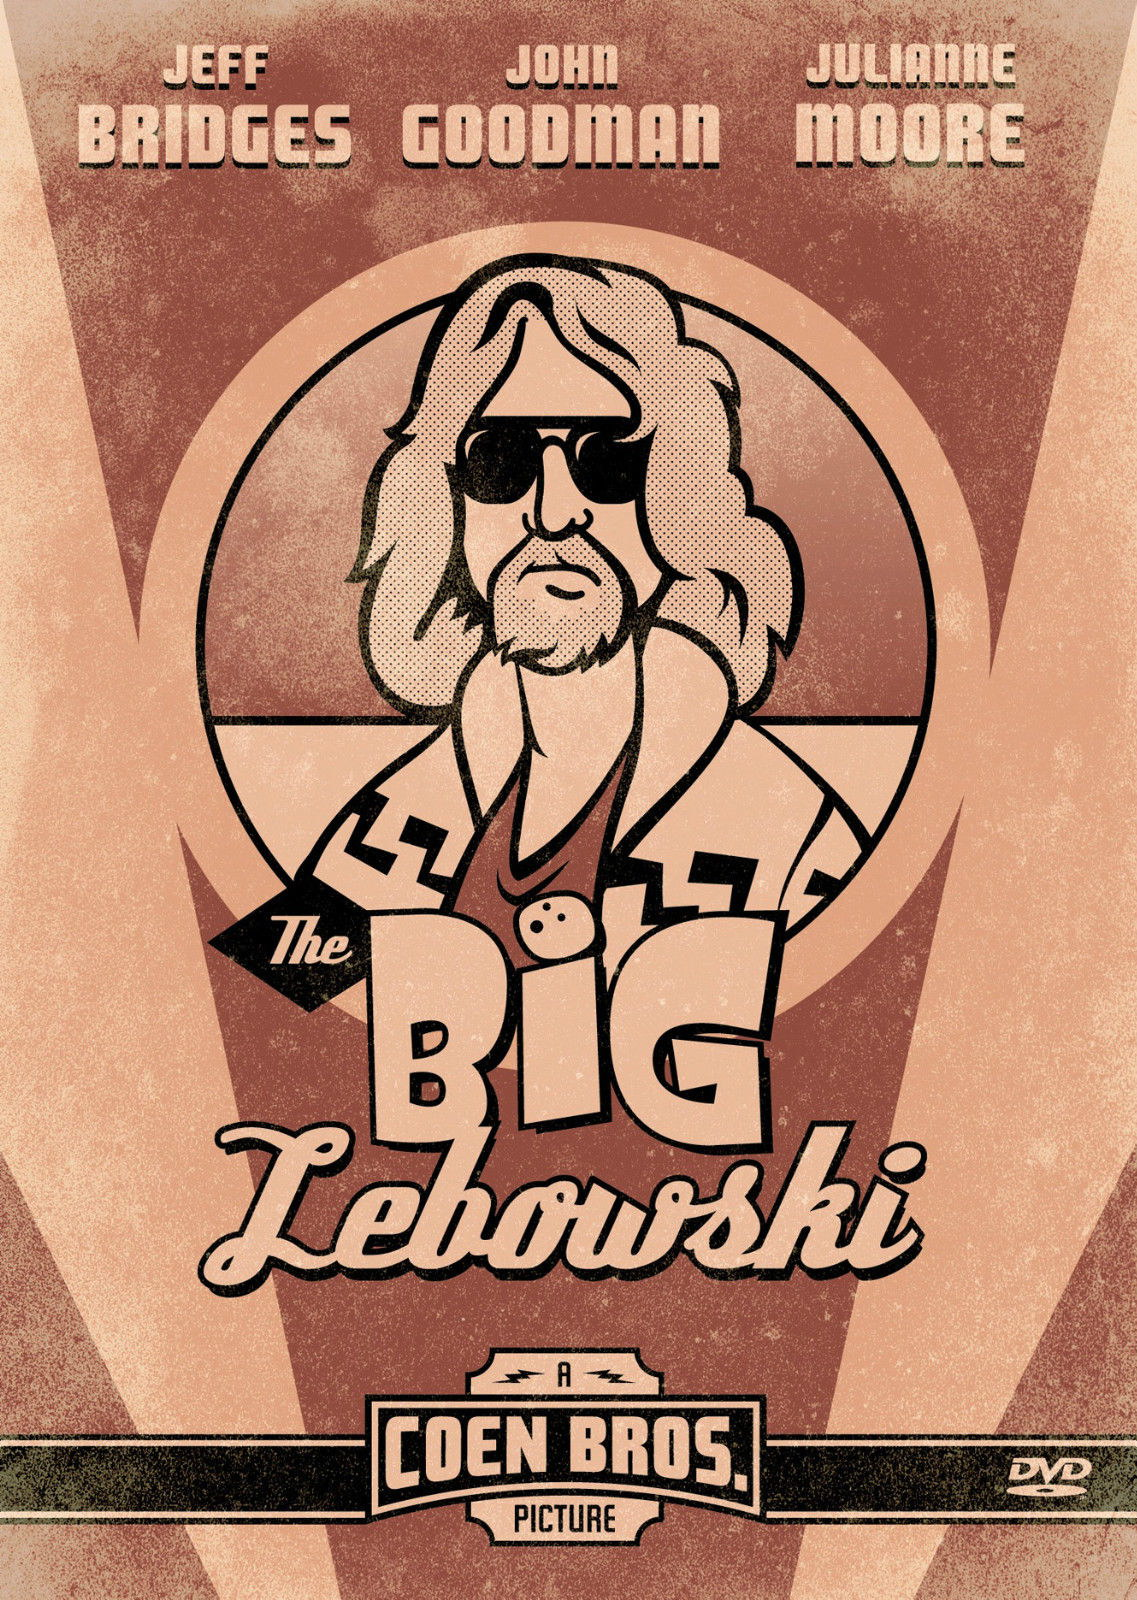 72365-THE-BIG-LEBOWSKI-Cohen-Brothers-Jeff-Bridges-FRAMED-CANVAS-PRINT-Toile